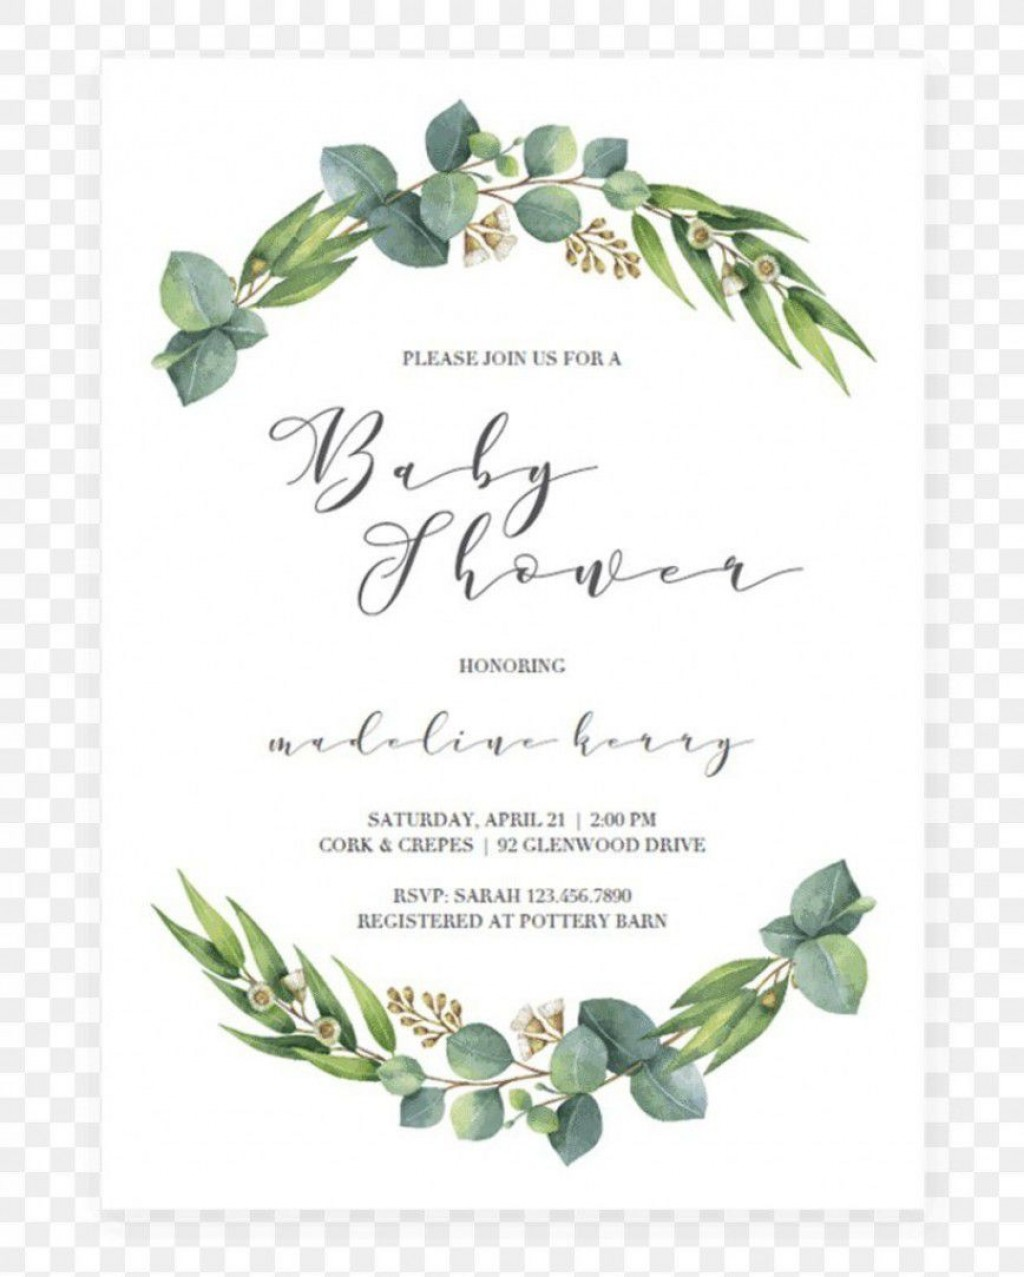 001 Wonderful Wedding Template For Word Idea  Free Invitation Indian Card M ProgramLarge